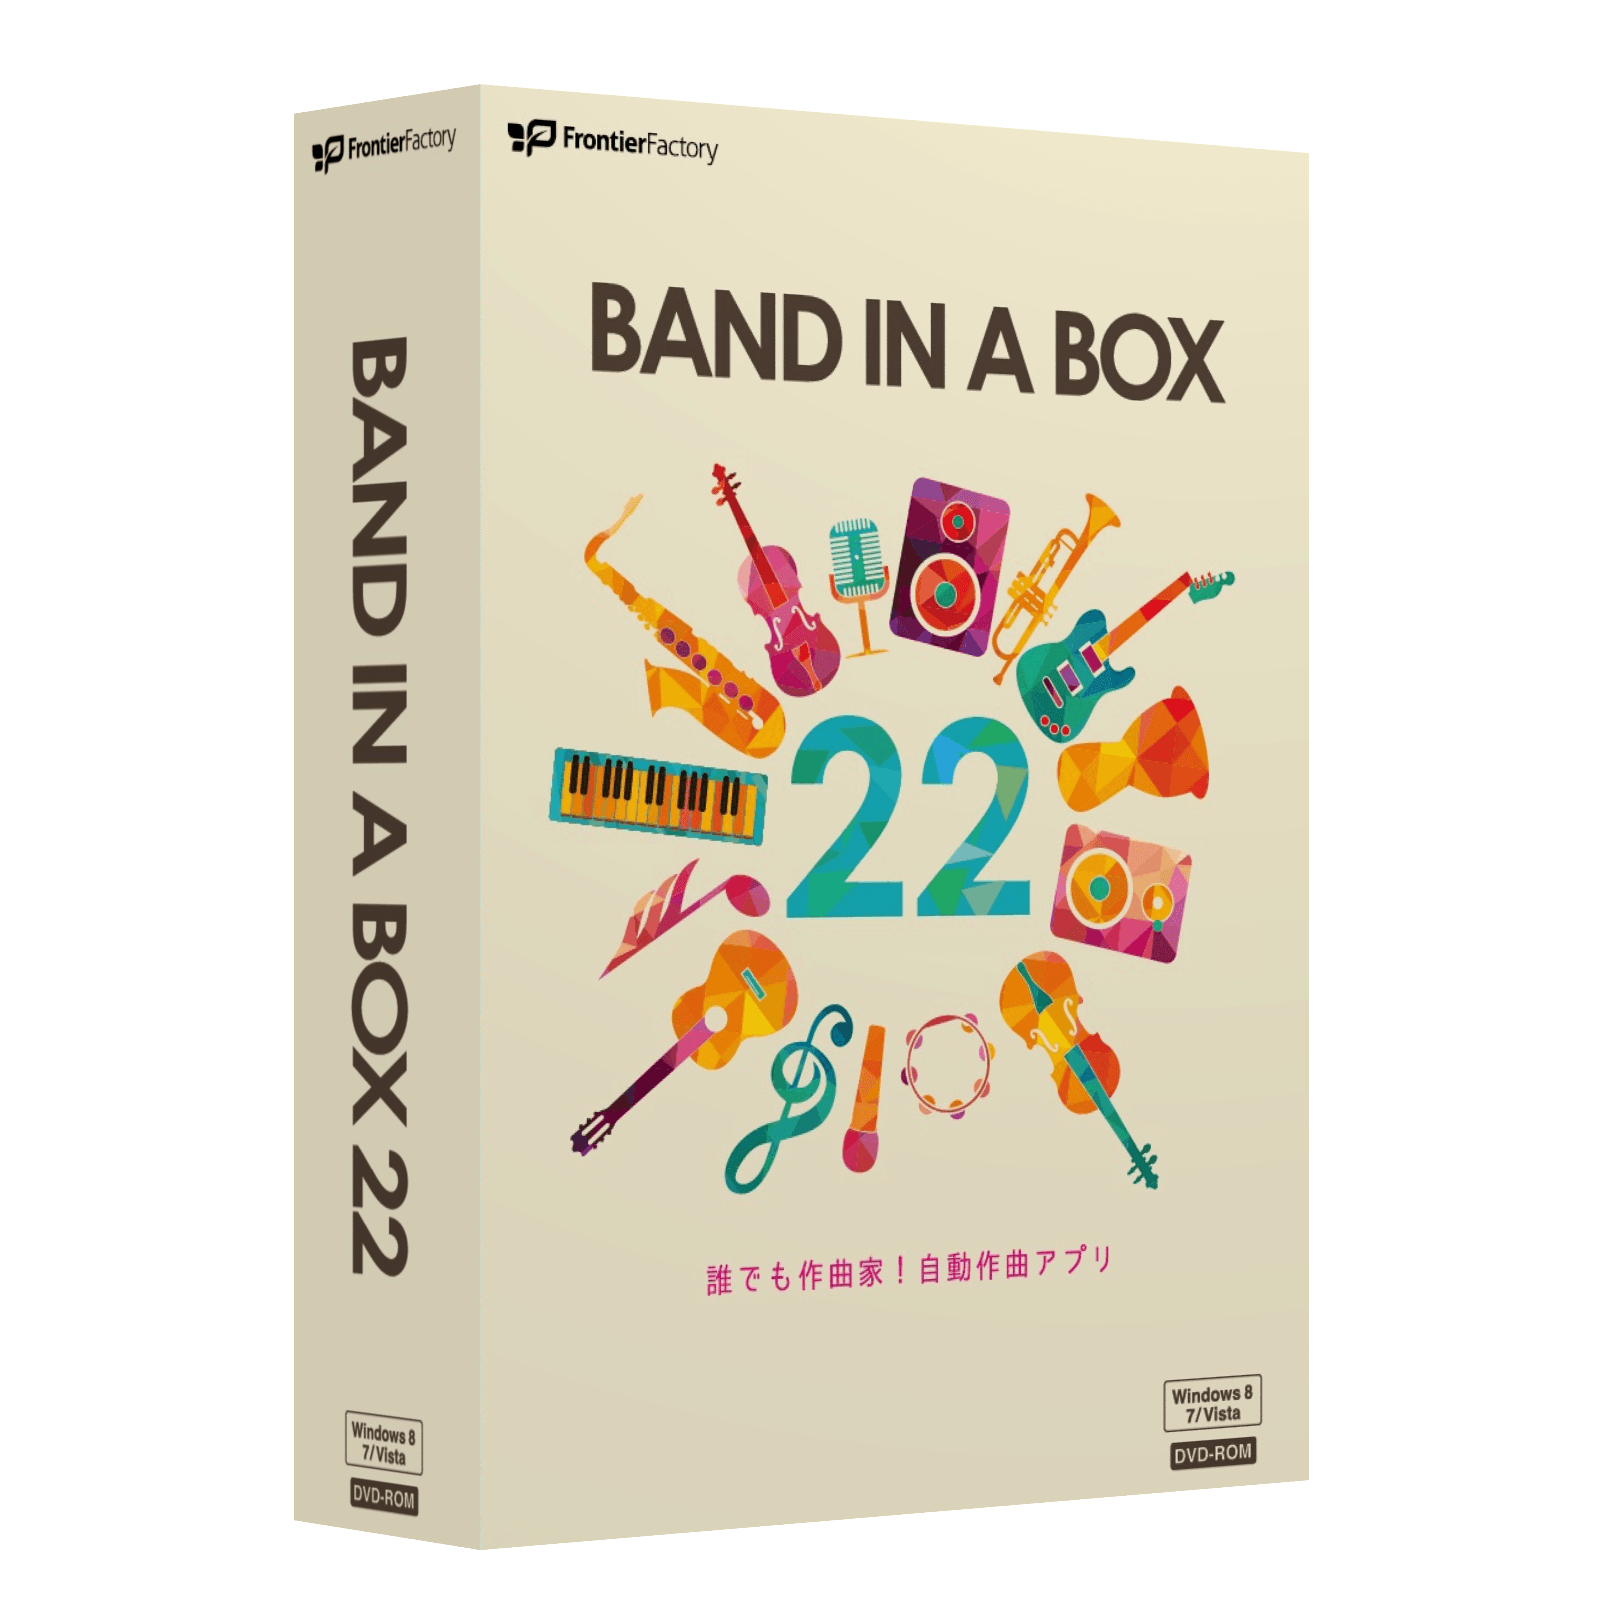 『Band-in-a-Box 22 for Windows』発売のお知らせ